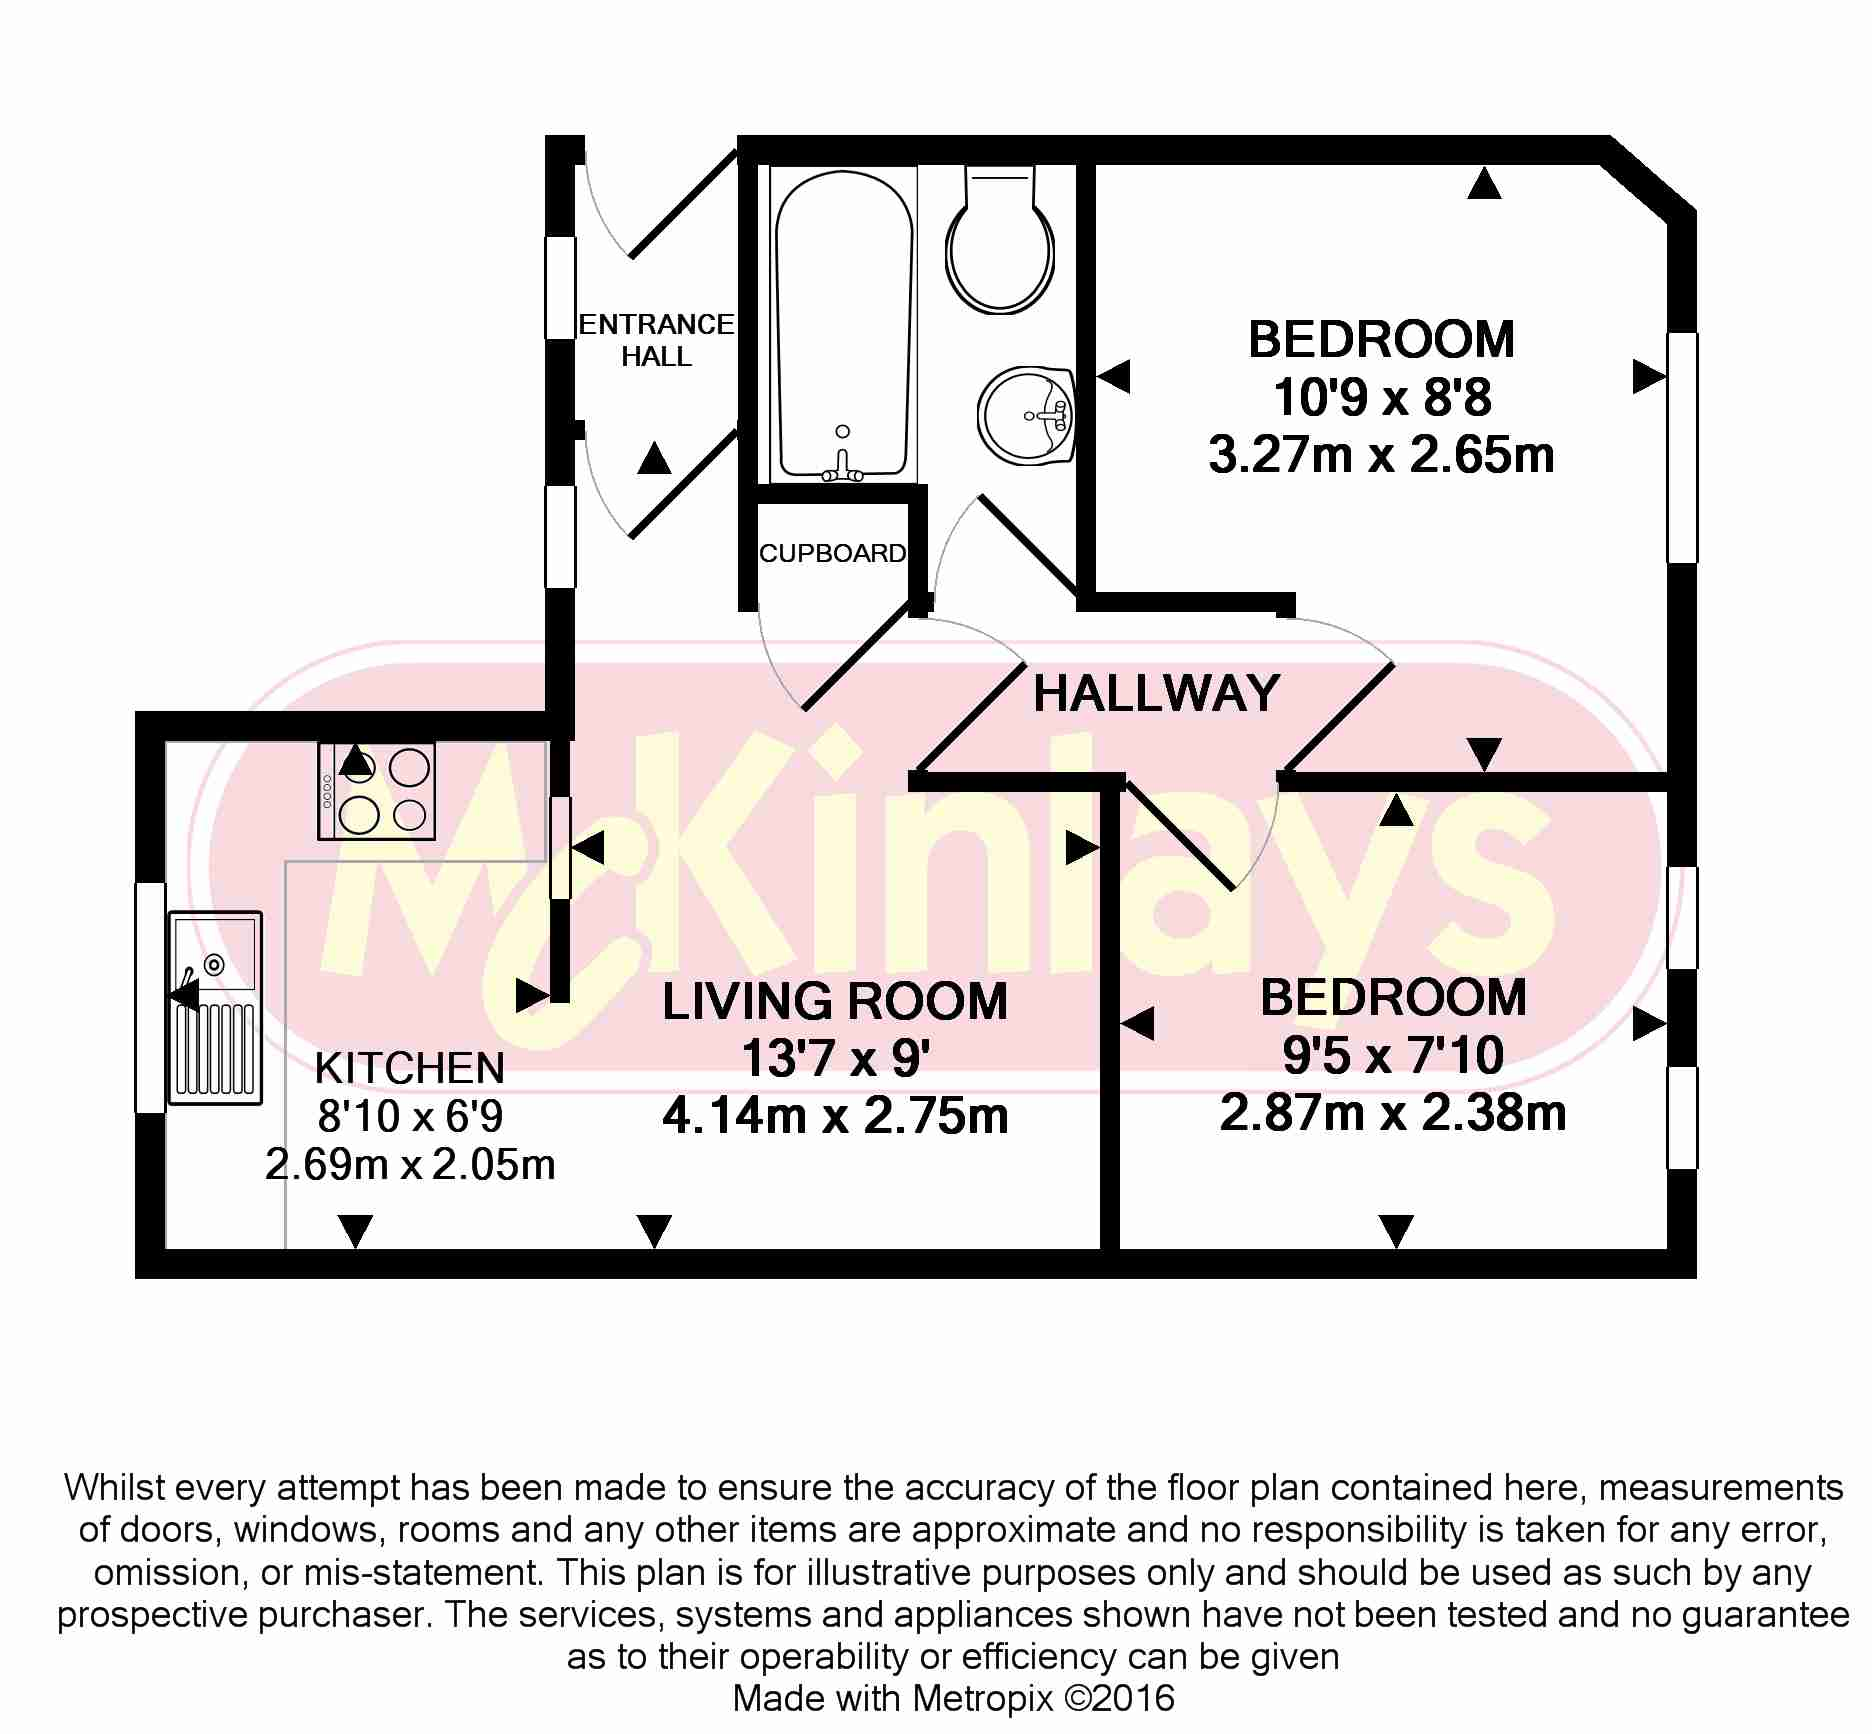 Foundry mews crewkerne ta18 2 bedroom flat for sale 40846651 primelocation Taunton swimming pool station road